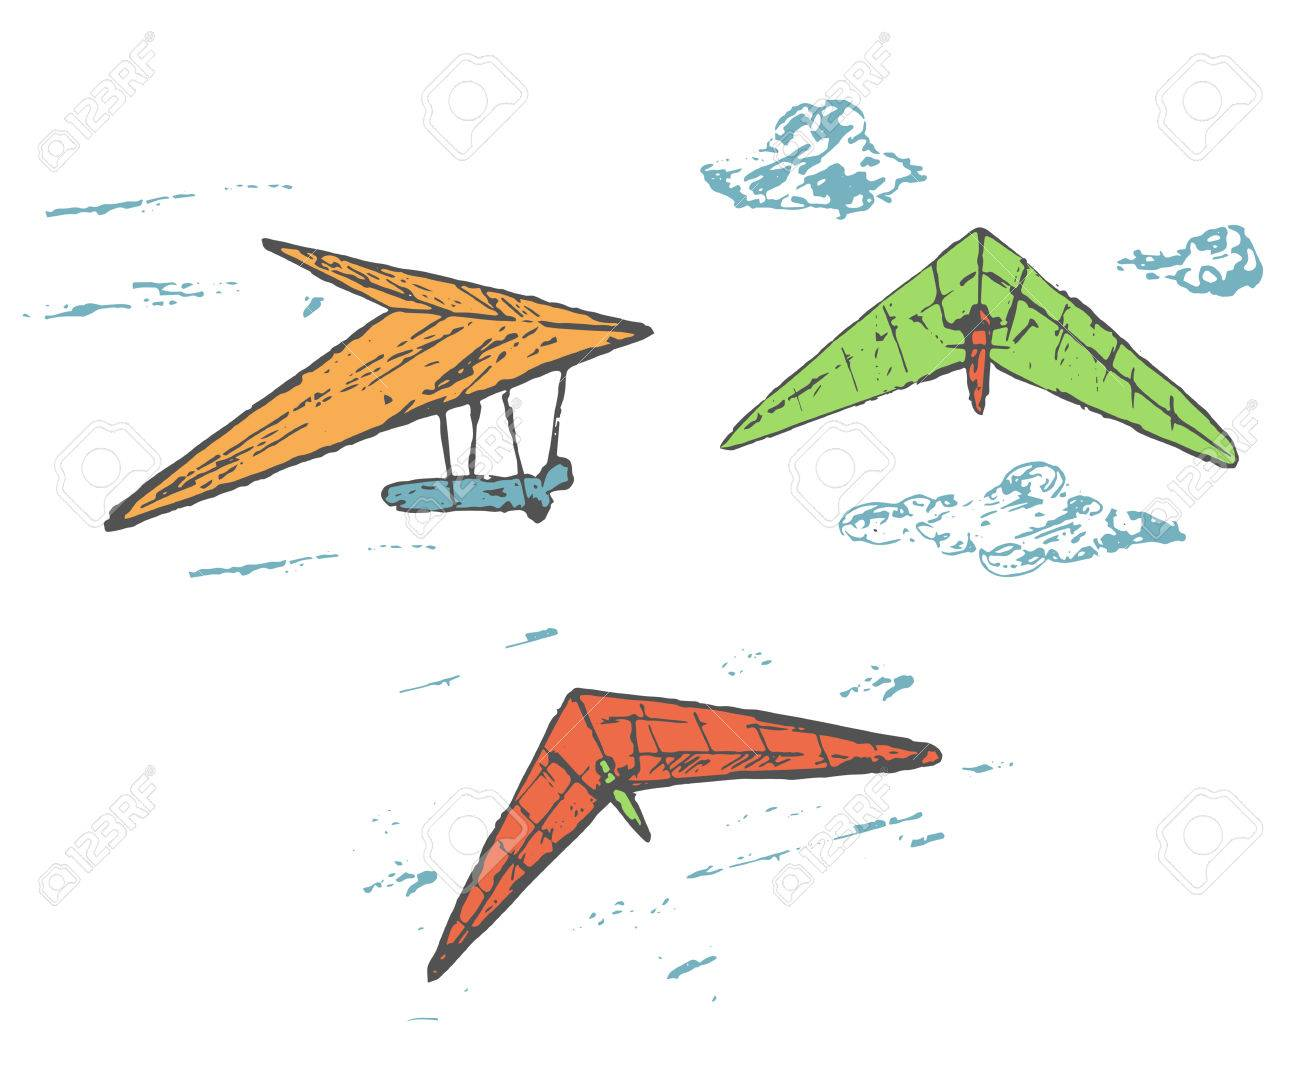 Hand drawn sketch hang glider, delta plane collection with clouds